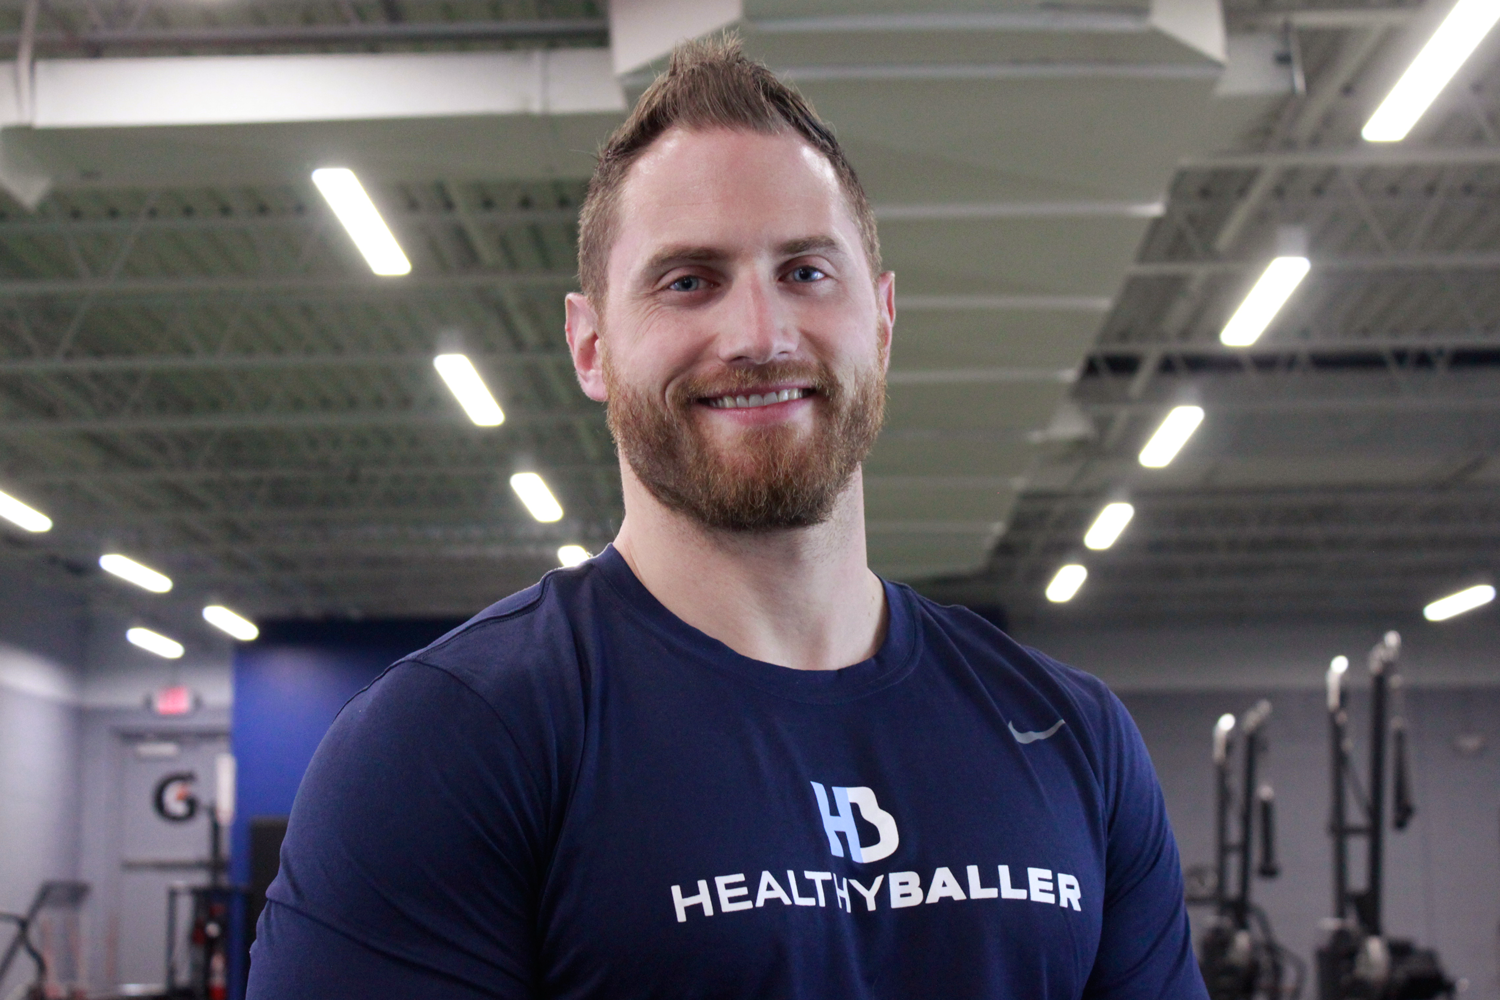 MATT BOYD | CO-FOUNDER | LEAD TRAINER    @healthy_baller   Matt has been training athletes of all ages in the DC area for over 10 years. He spent 3 years as the Strength and Conditioning Coach at St. John's College High School Men's Basketball and is the current Head Strength and Conditioning Coach for the two-time State and WCAC champion Bishop Ireton Women's Lacrosse program in Alexandria, VA. Matt has worked with several professional basketball teams in China, as well as Taiwan's Men's National Team.  His interest for sports training grew in high school and while playing Division 1 baseball at George Washington University. Matt's unique understanding of the demands of both the high school and college athlete, help him create a dynamic training experience that results in athletes who consistently outperform their competition.